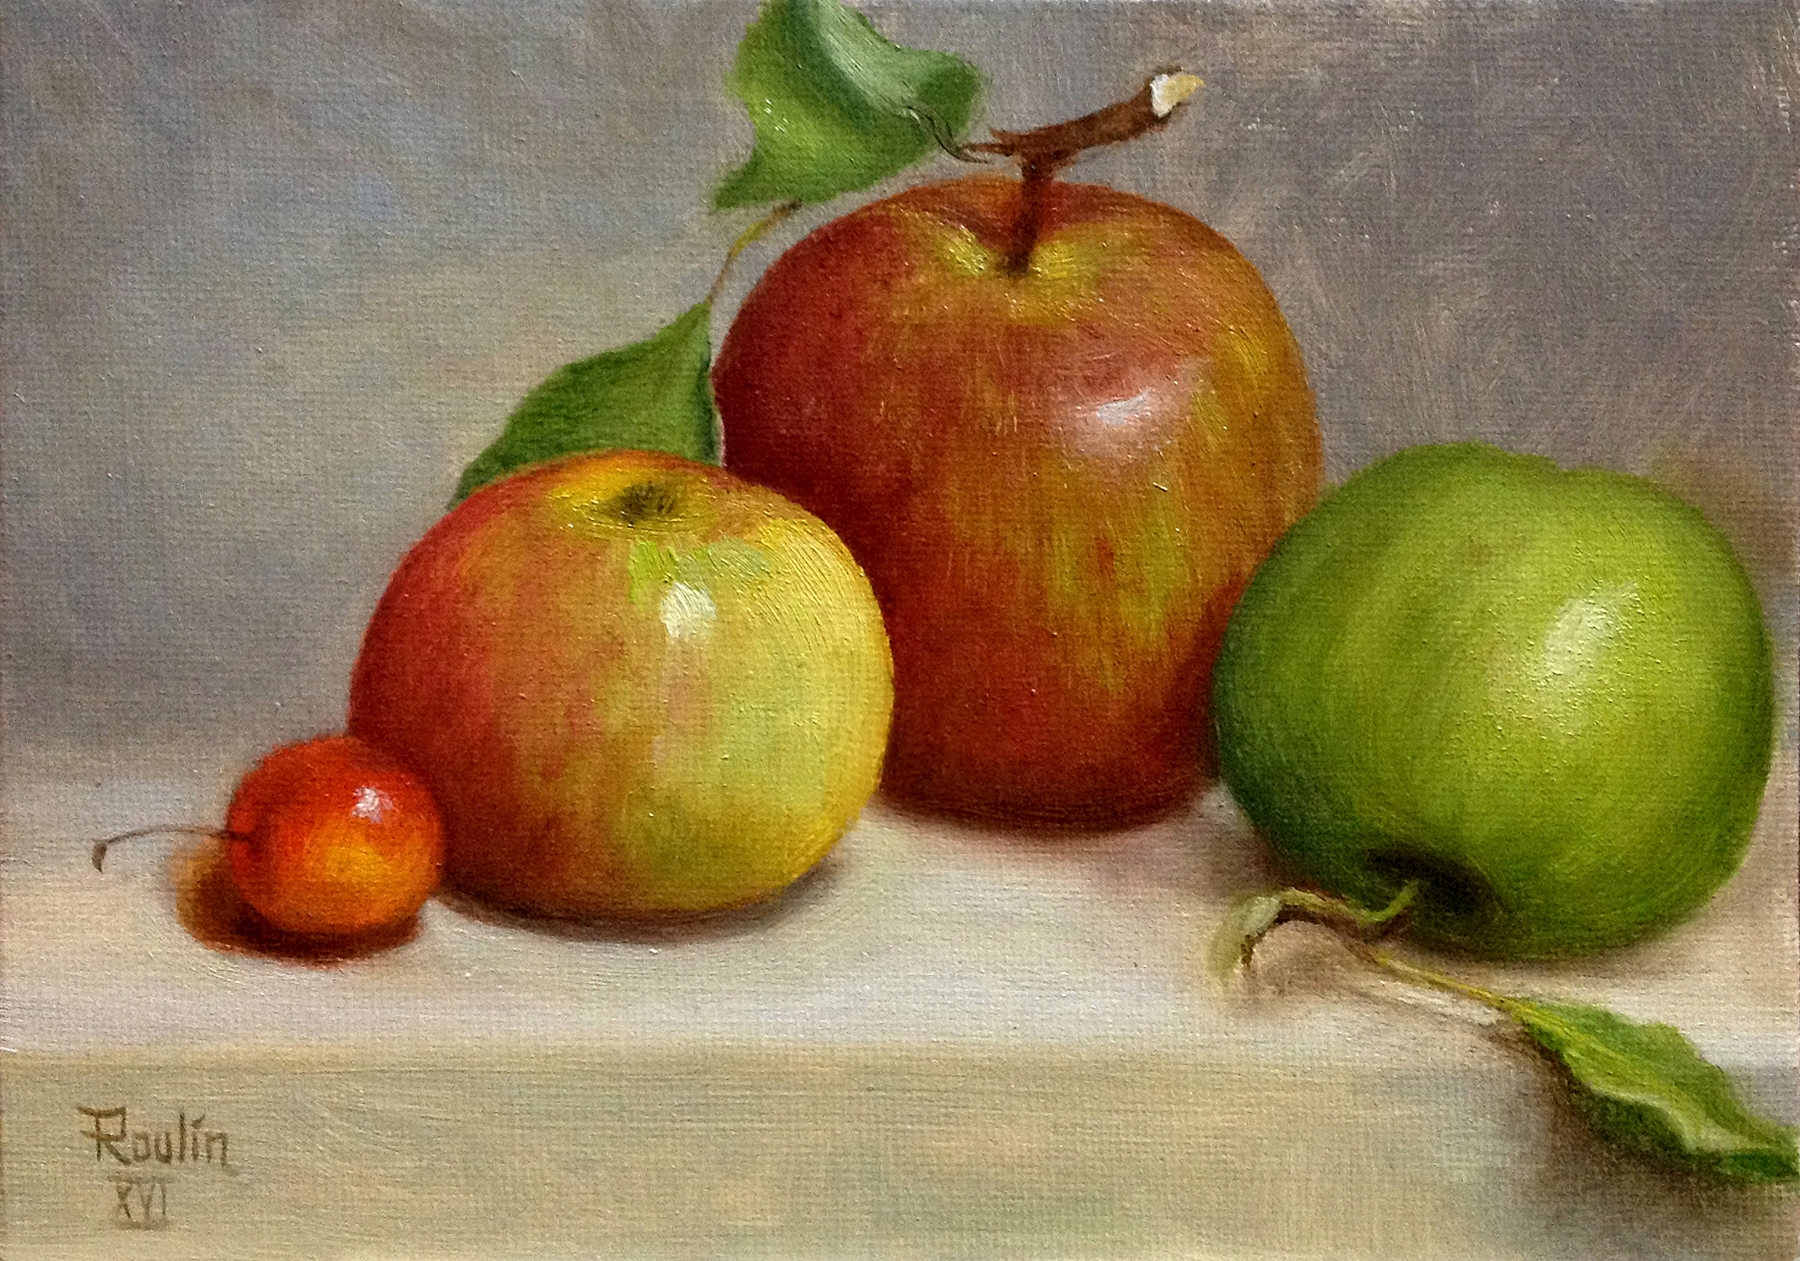 Tatiana Roulin, Apples & Cherry, SOLD